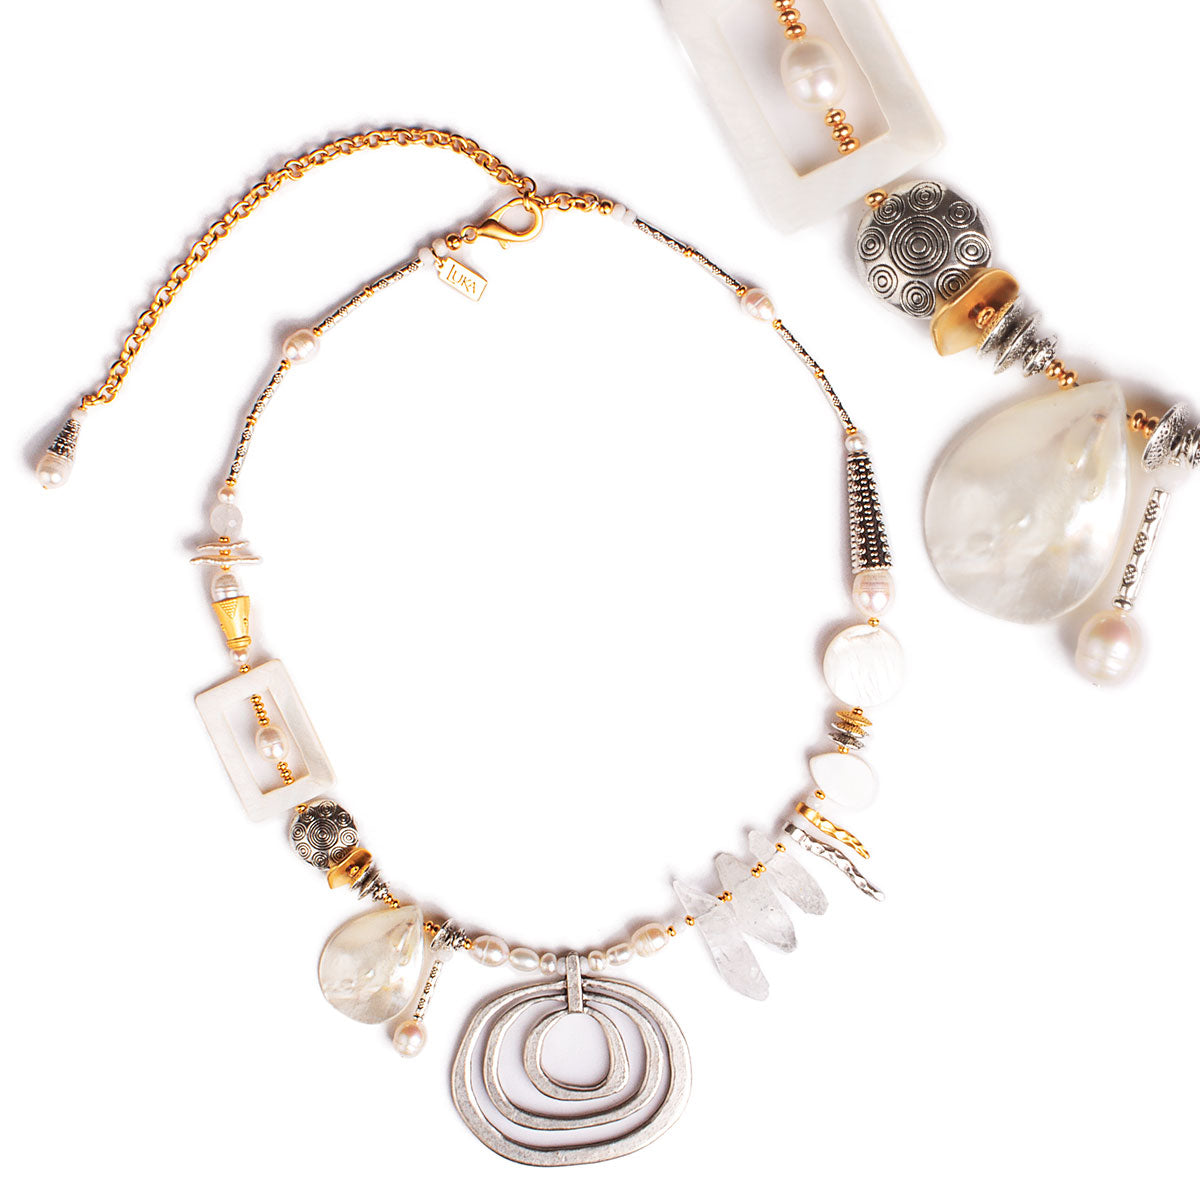 N°613 The Unexpected Pearl & Quartz Euphoria Statement Necklace